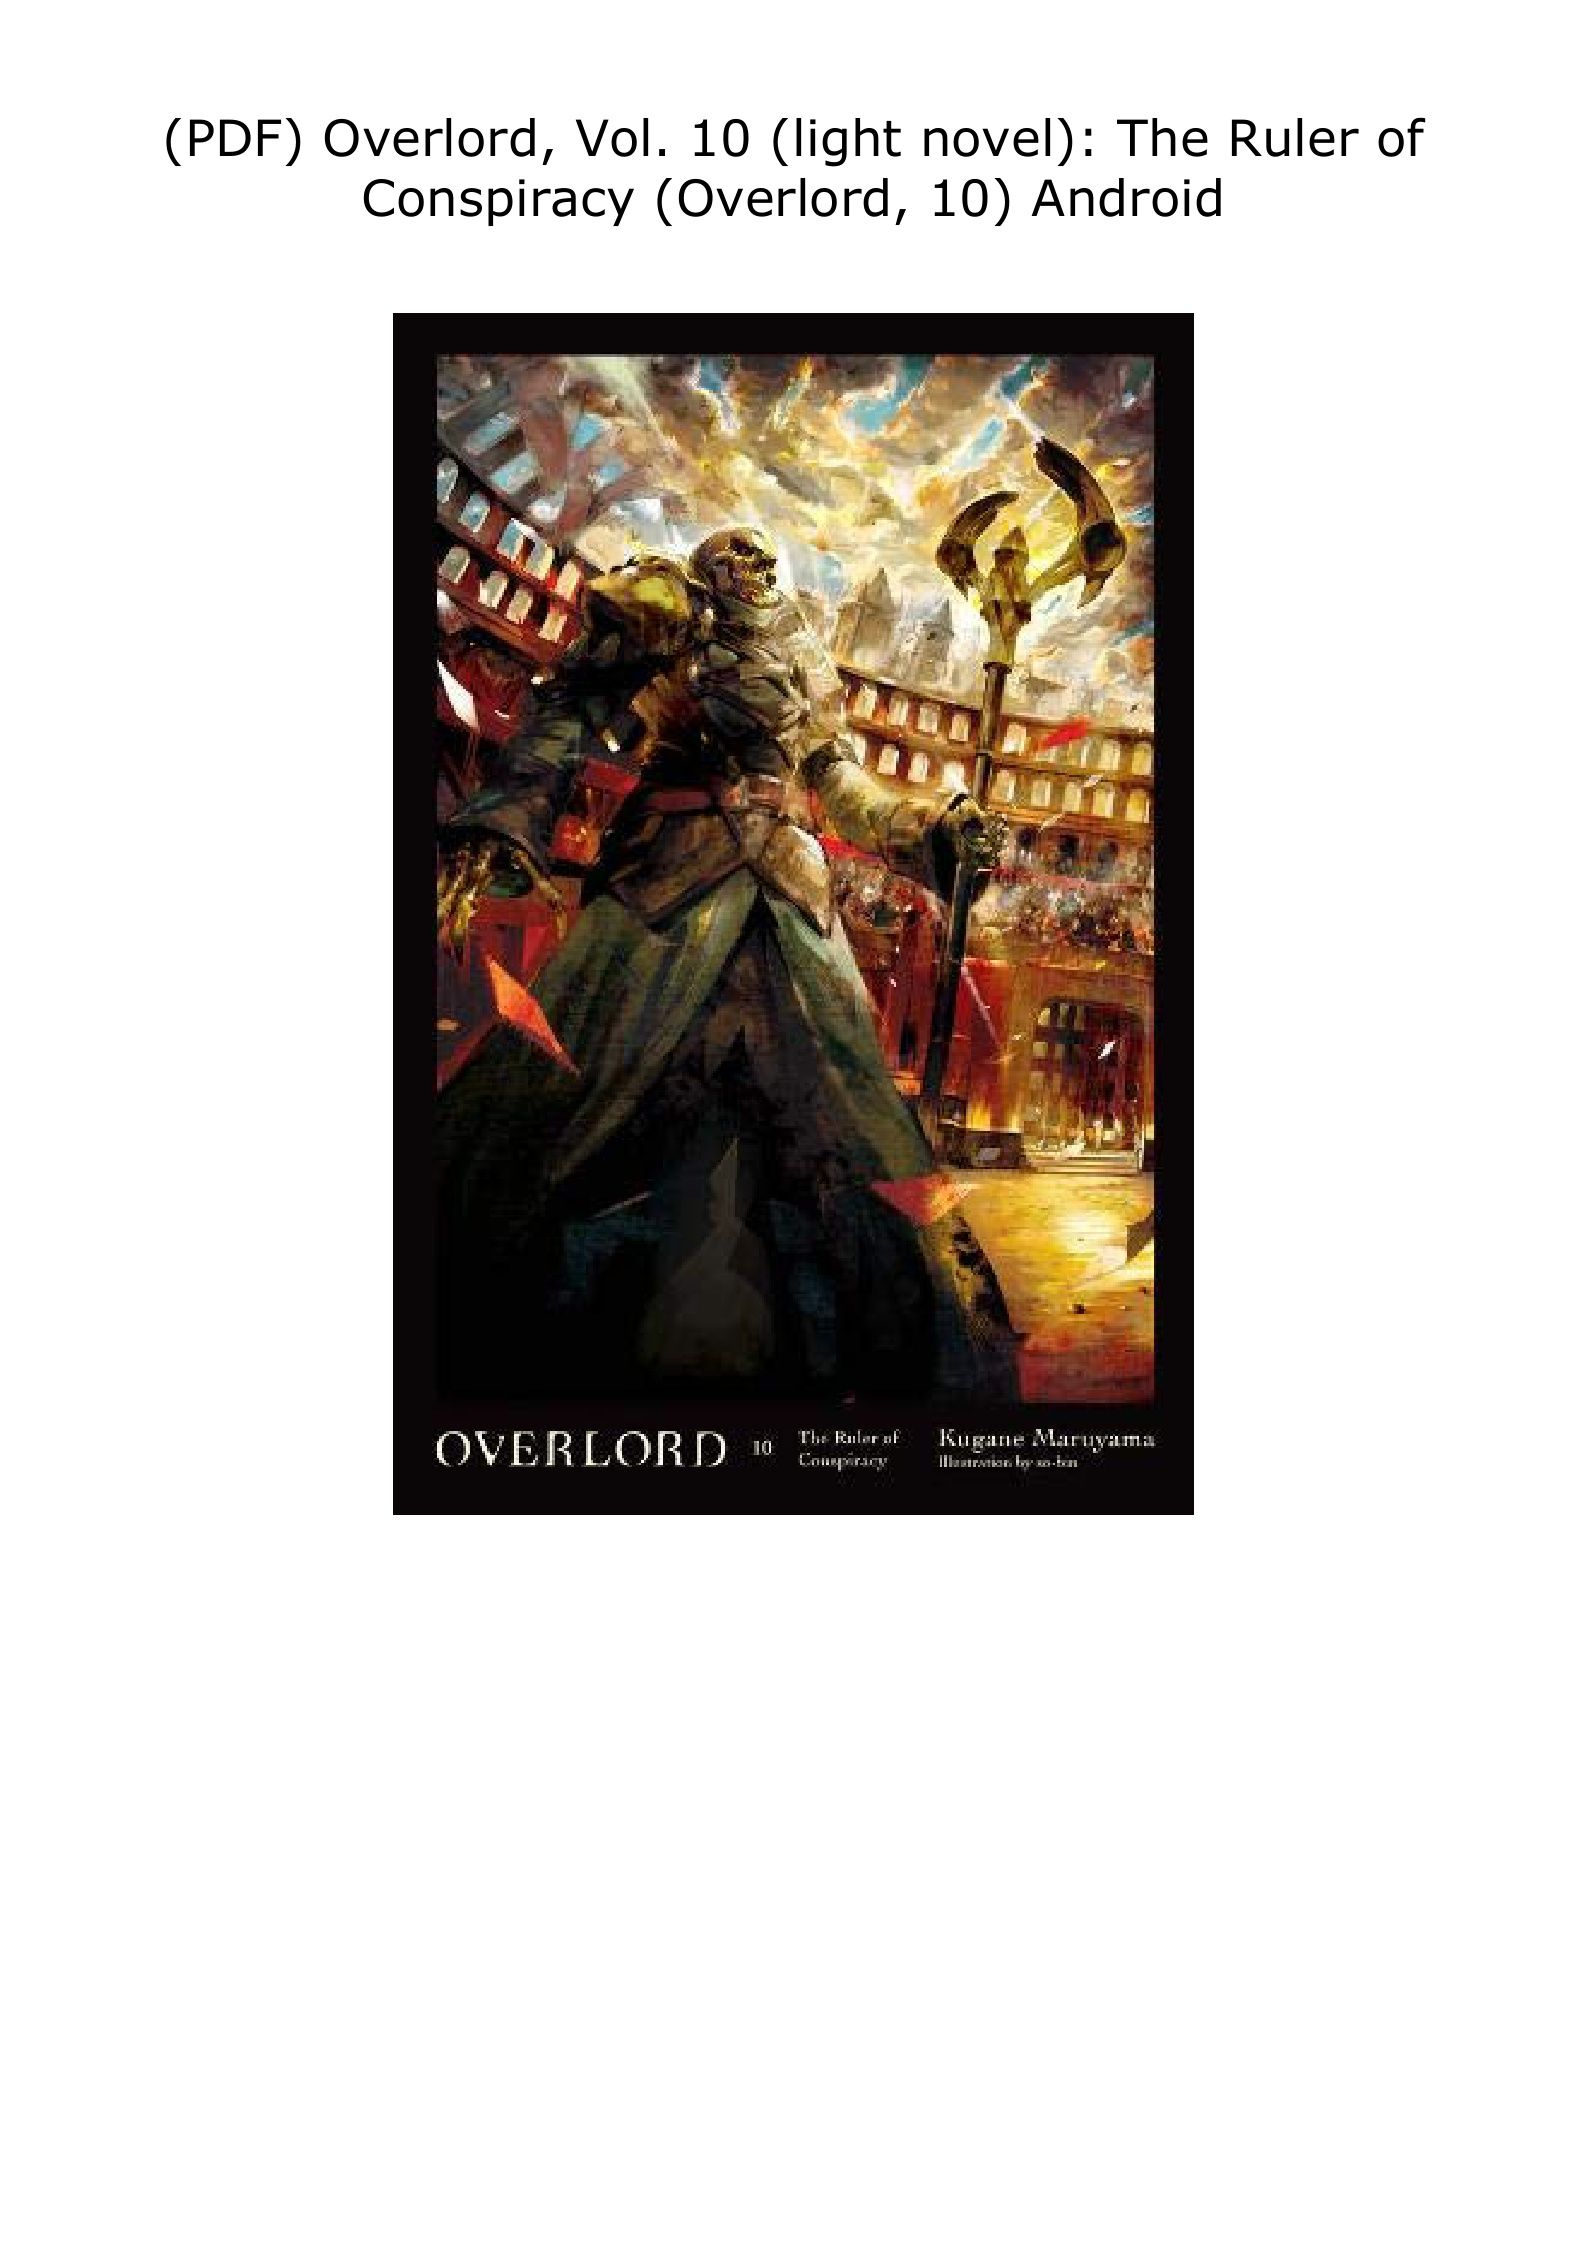 Pdf Overlord Vol 10 Light Novel The Ruler Of Conspiracy Overlord 10 Android In 2021 Light Novel Novels Science Fiction Fantasy